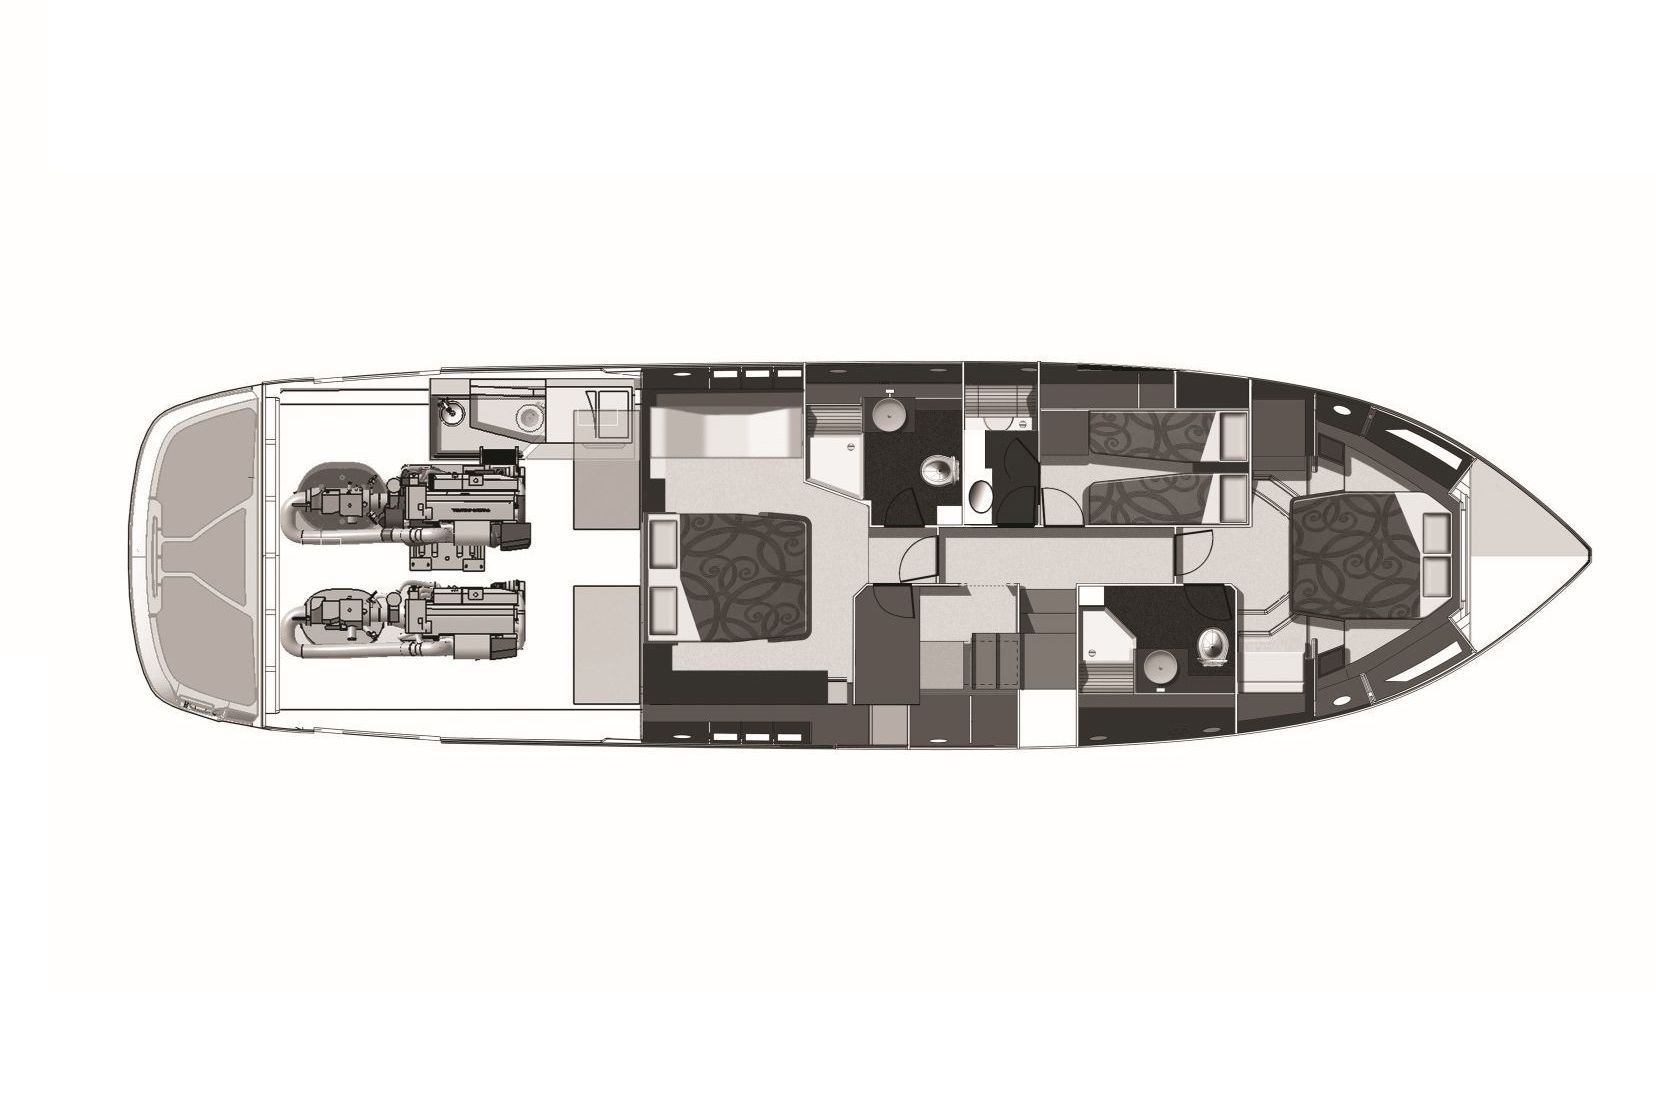 Cranchi 60 FLY LOWER DECK